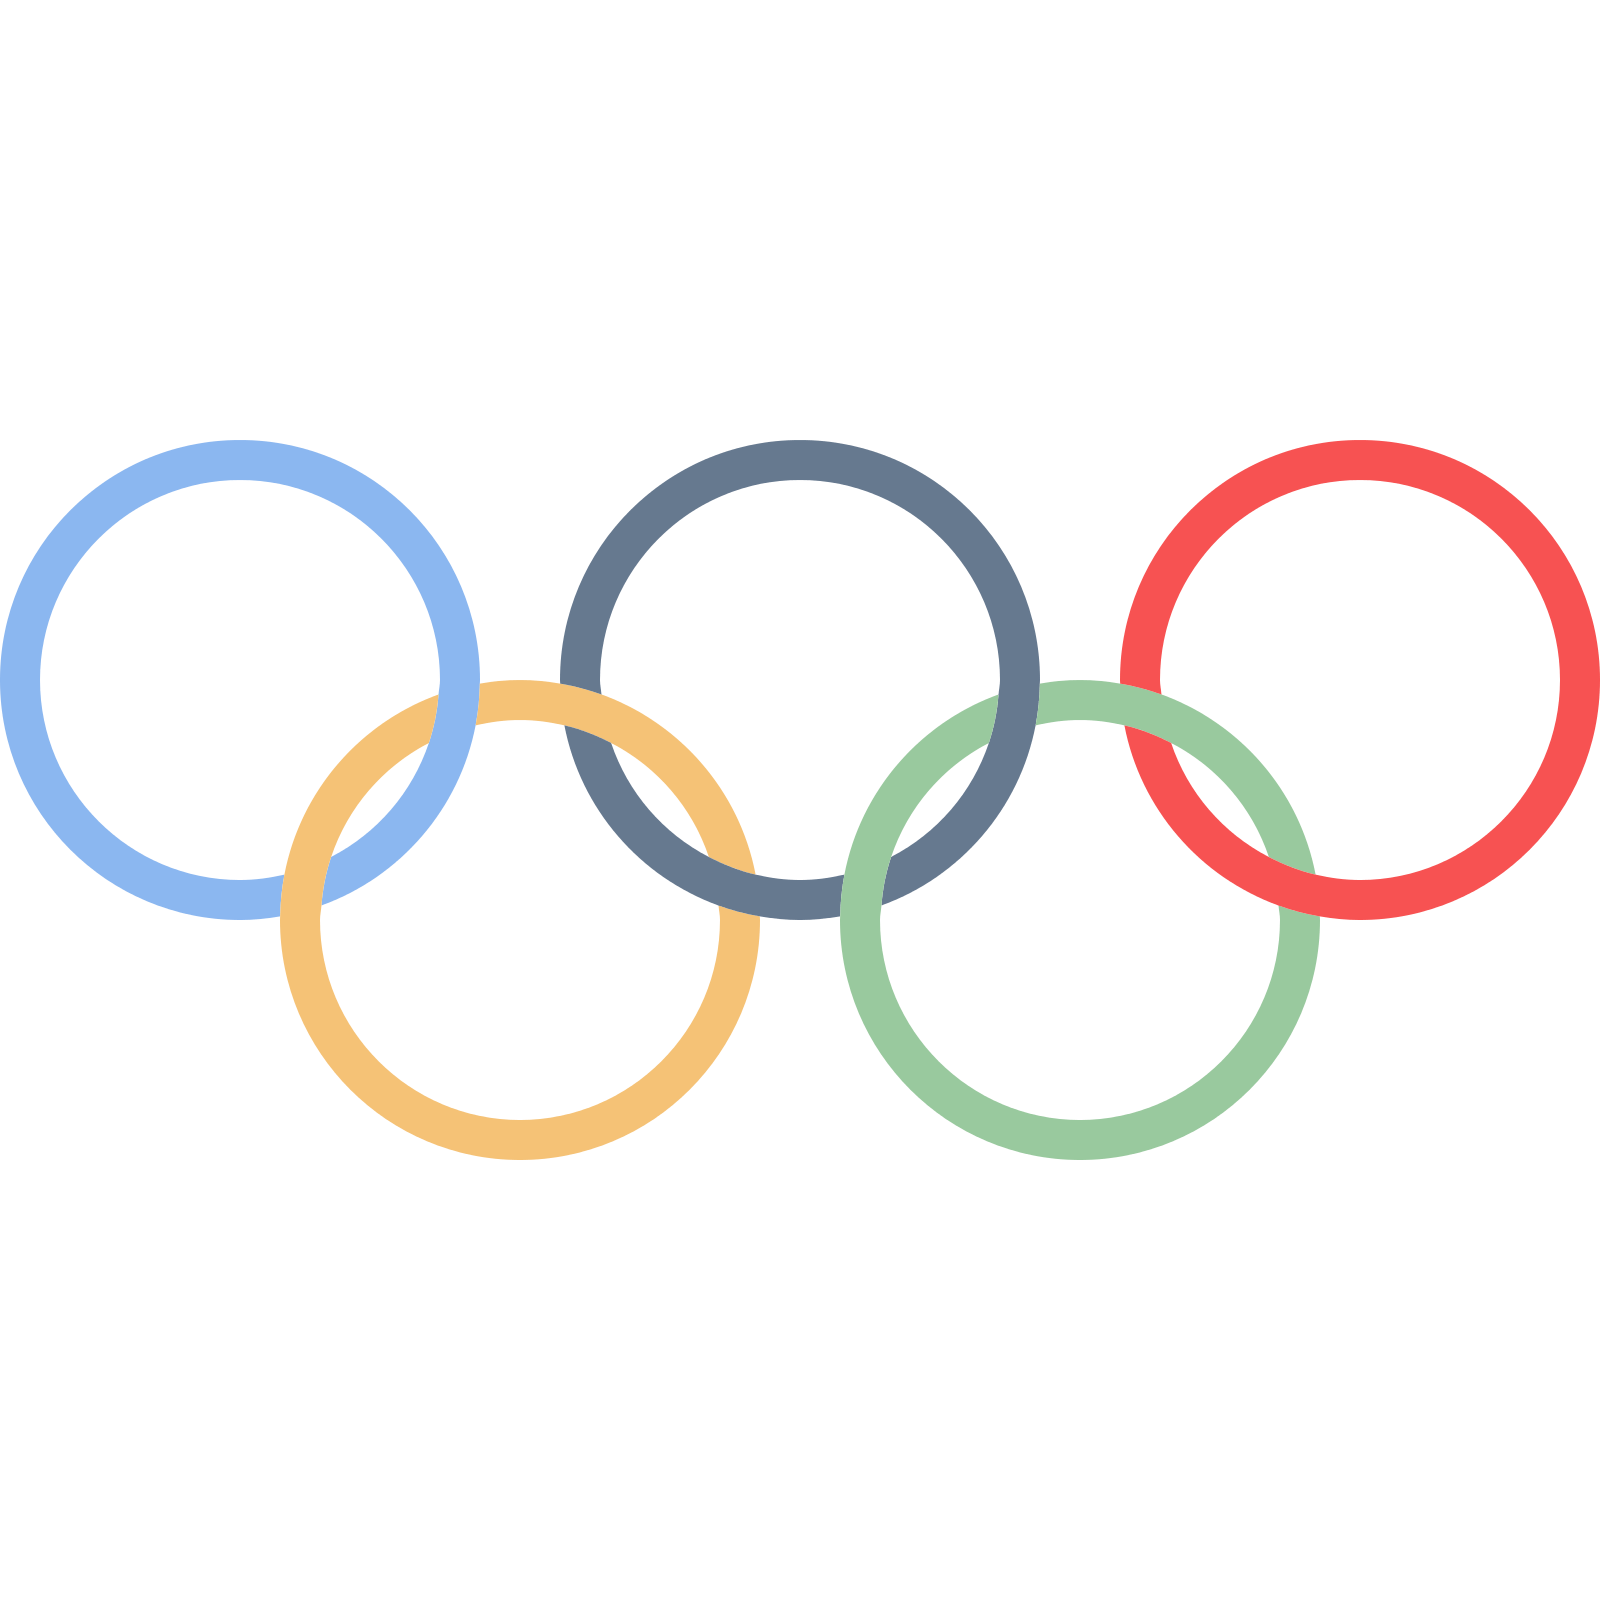 olympic rings png in high resolution web icons png rh webiconspng com olympic rings clipart olympic rings clipart free